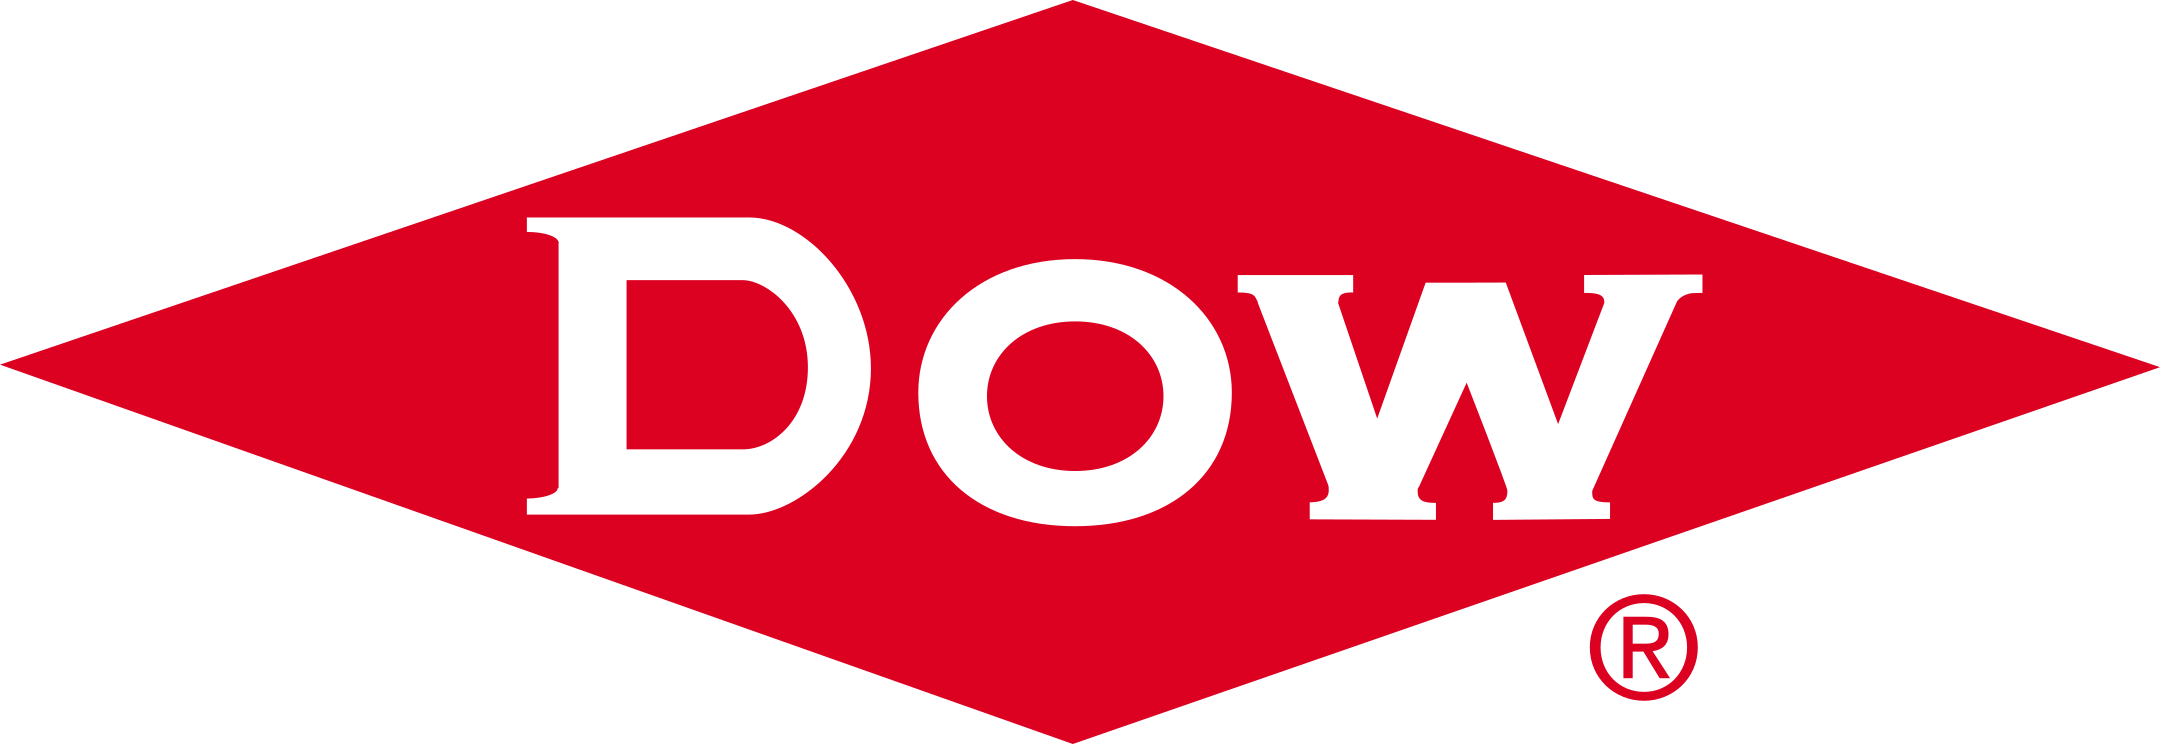 Dow Chemical logo.